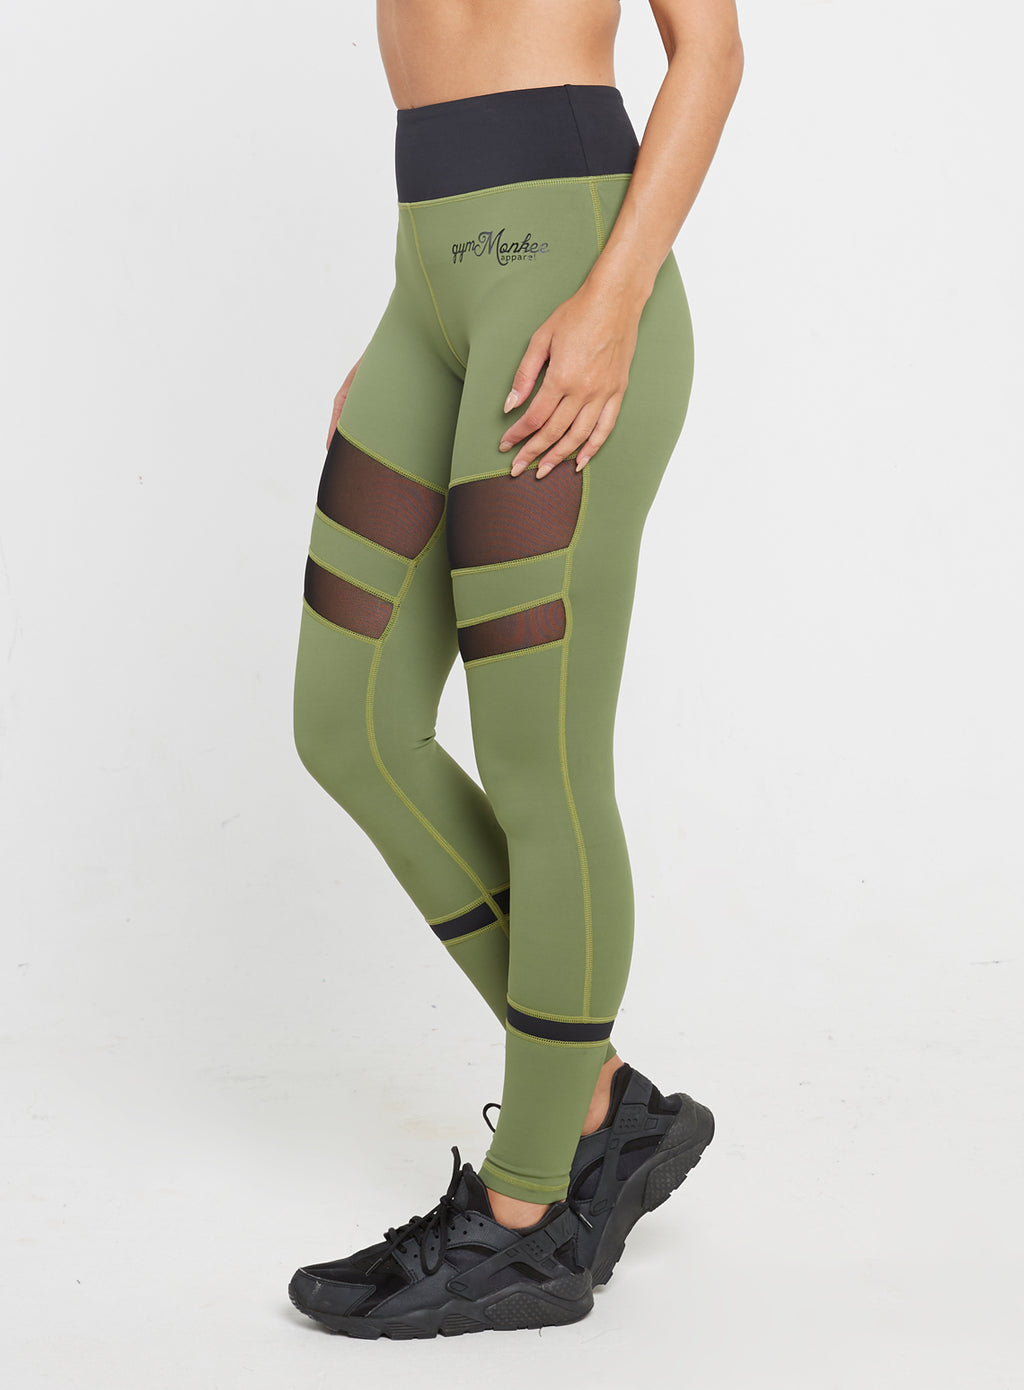 Gym Monkee - Ladies Black and Khaki Leggings LEFT